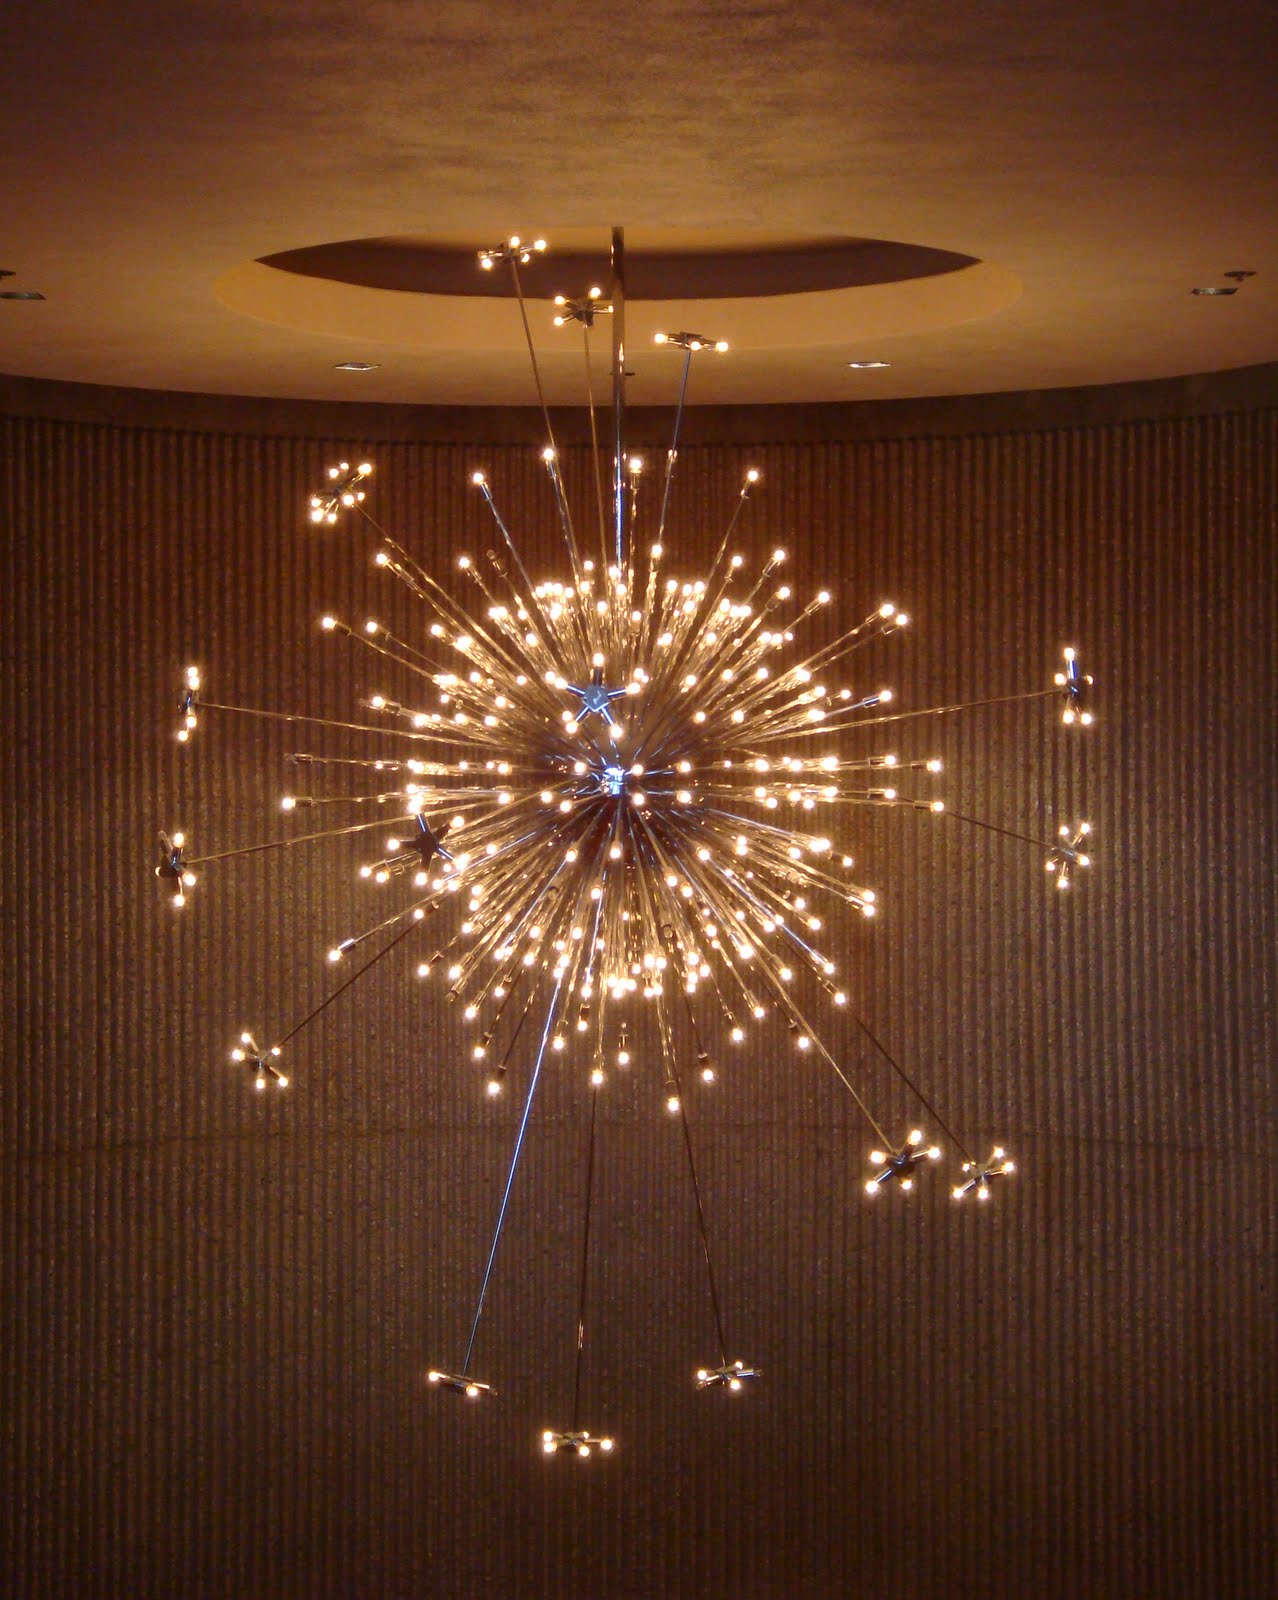 Modern Lighting The Sputnik Starburst Chandelier At Palm Springs Desert Museum Credit Nova68 Com